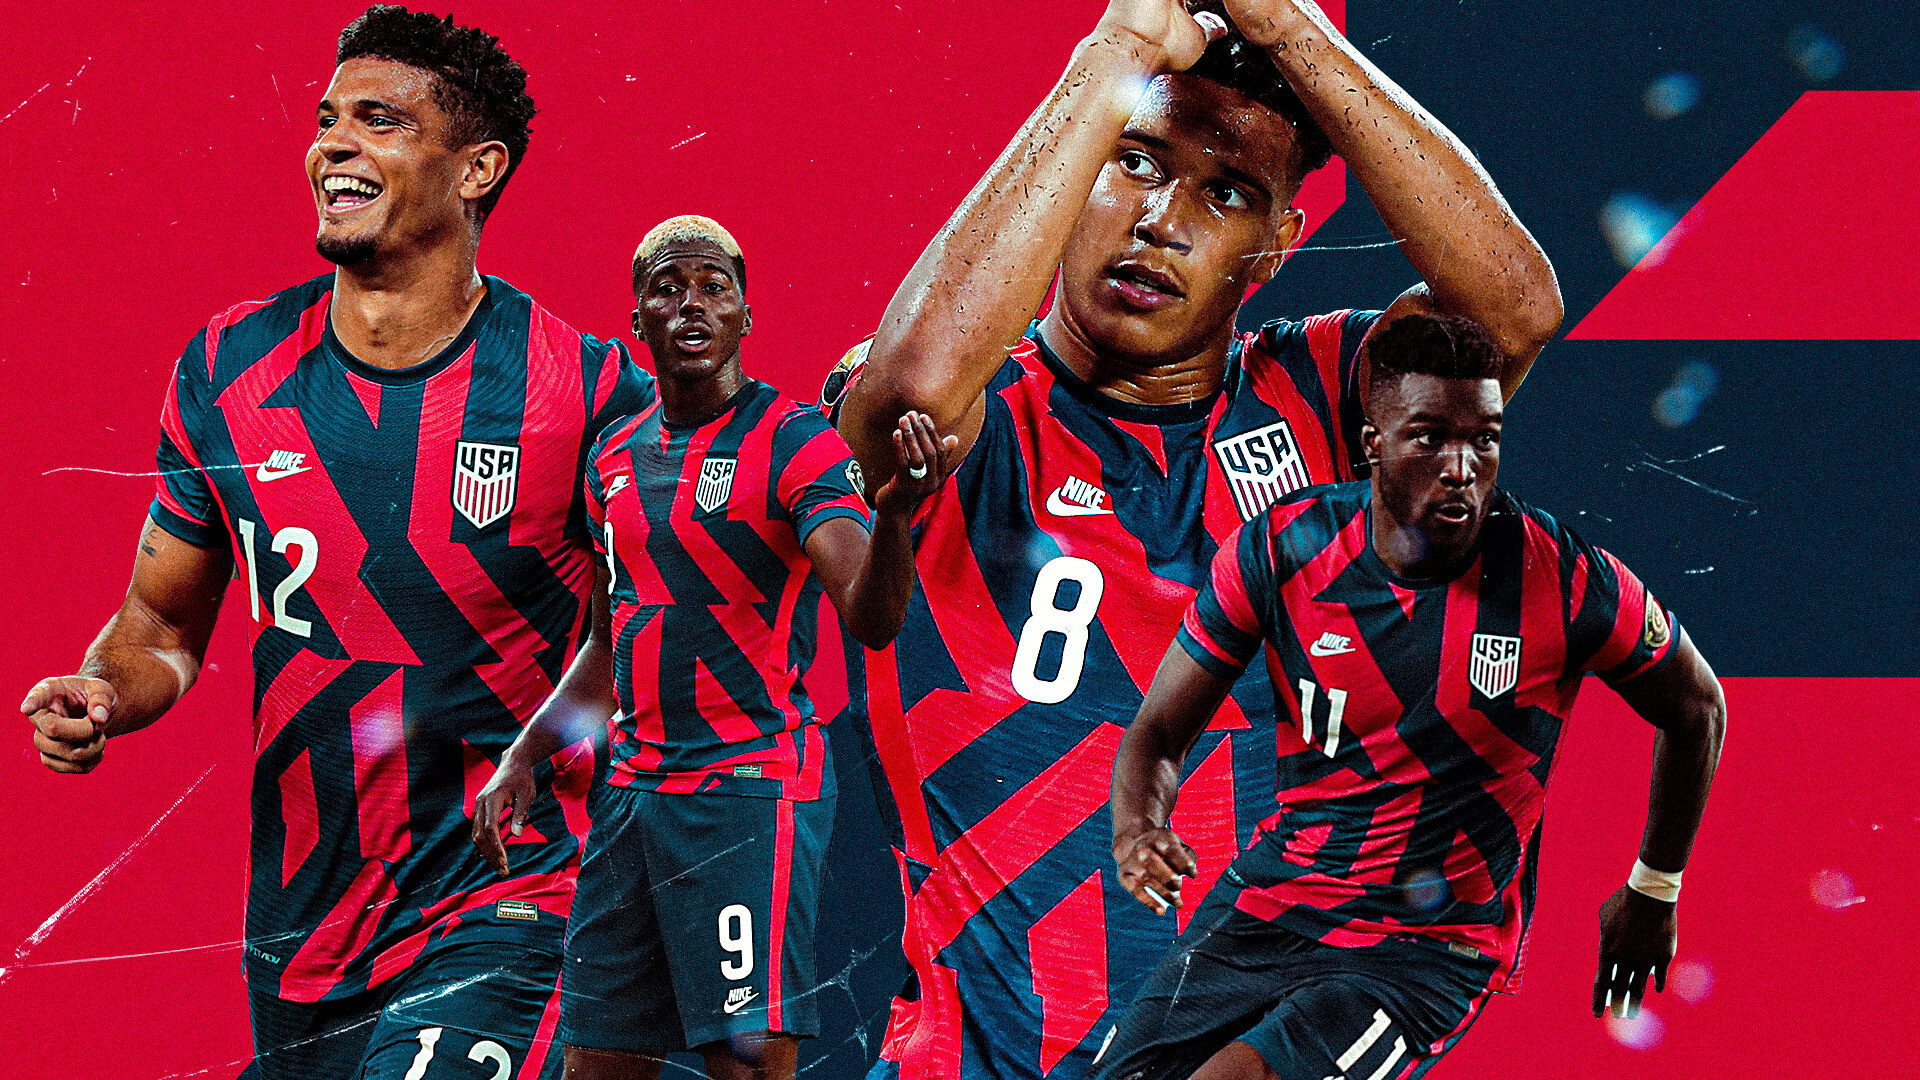 USMNT sees Gold Cup as chance to identify talent, set course toward Qatar 2022